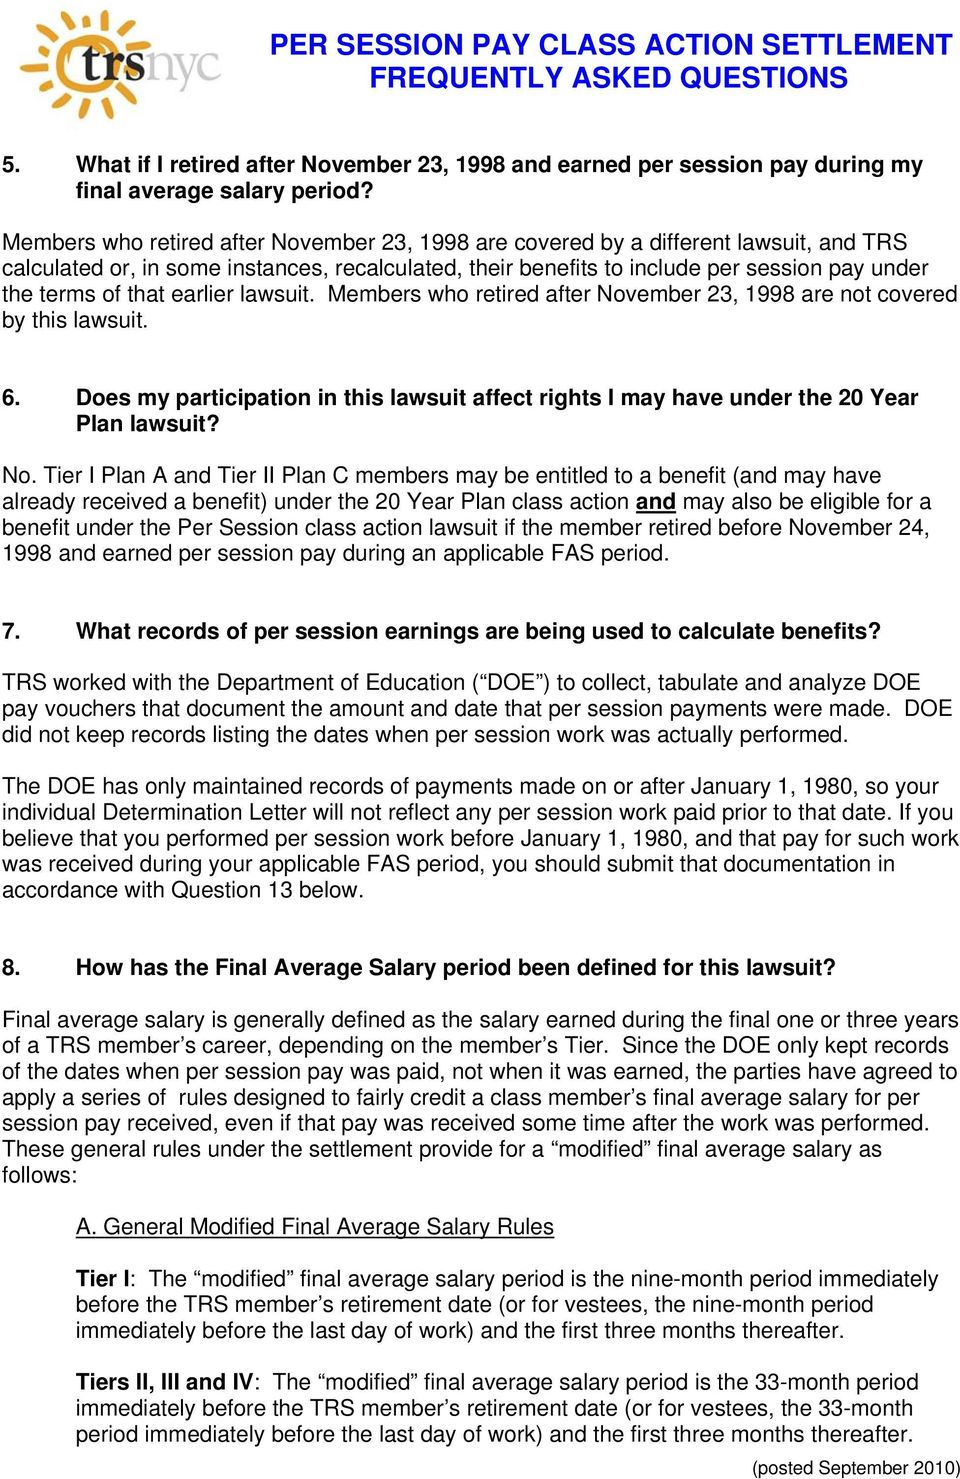 per session pay class action settlement frequently asked questions - pdf